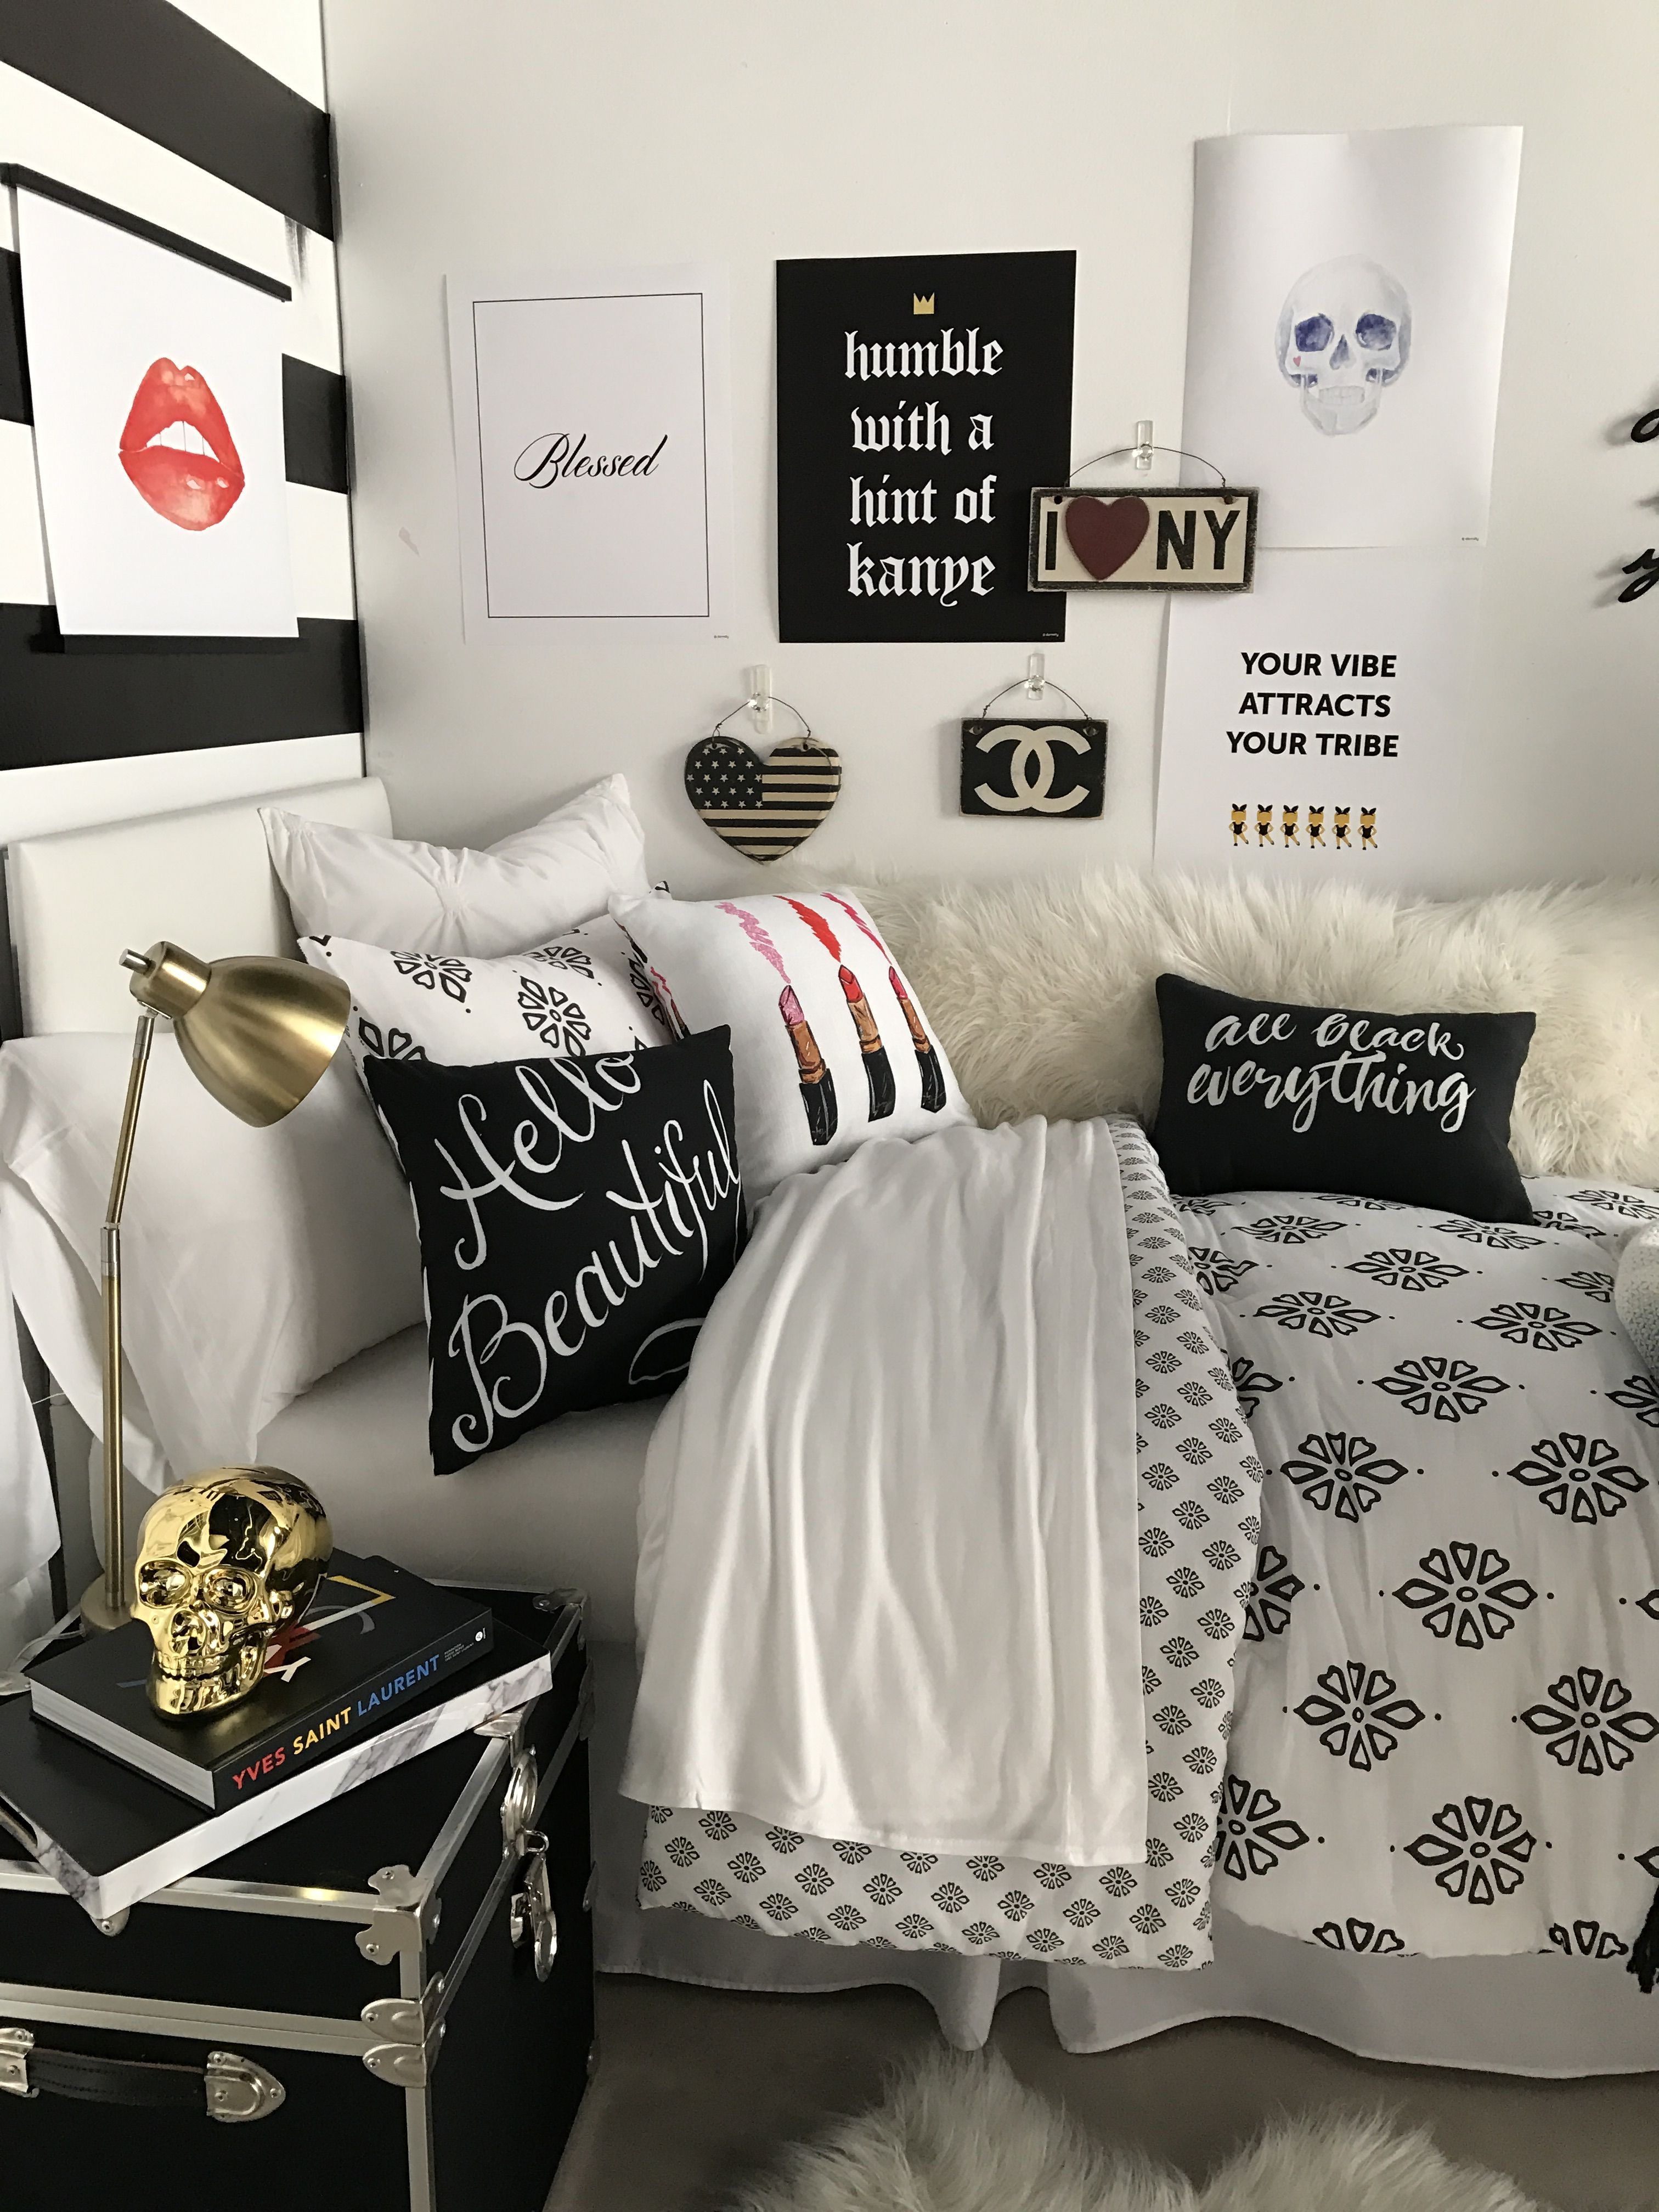 Livre Chanel Deco Fashion Night In Shop This Look On Dormify Dorm